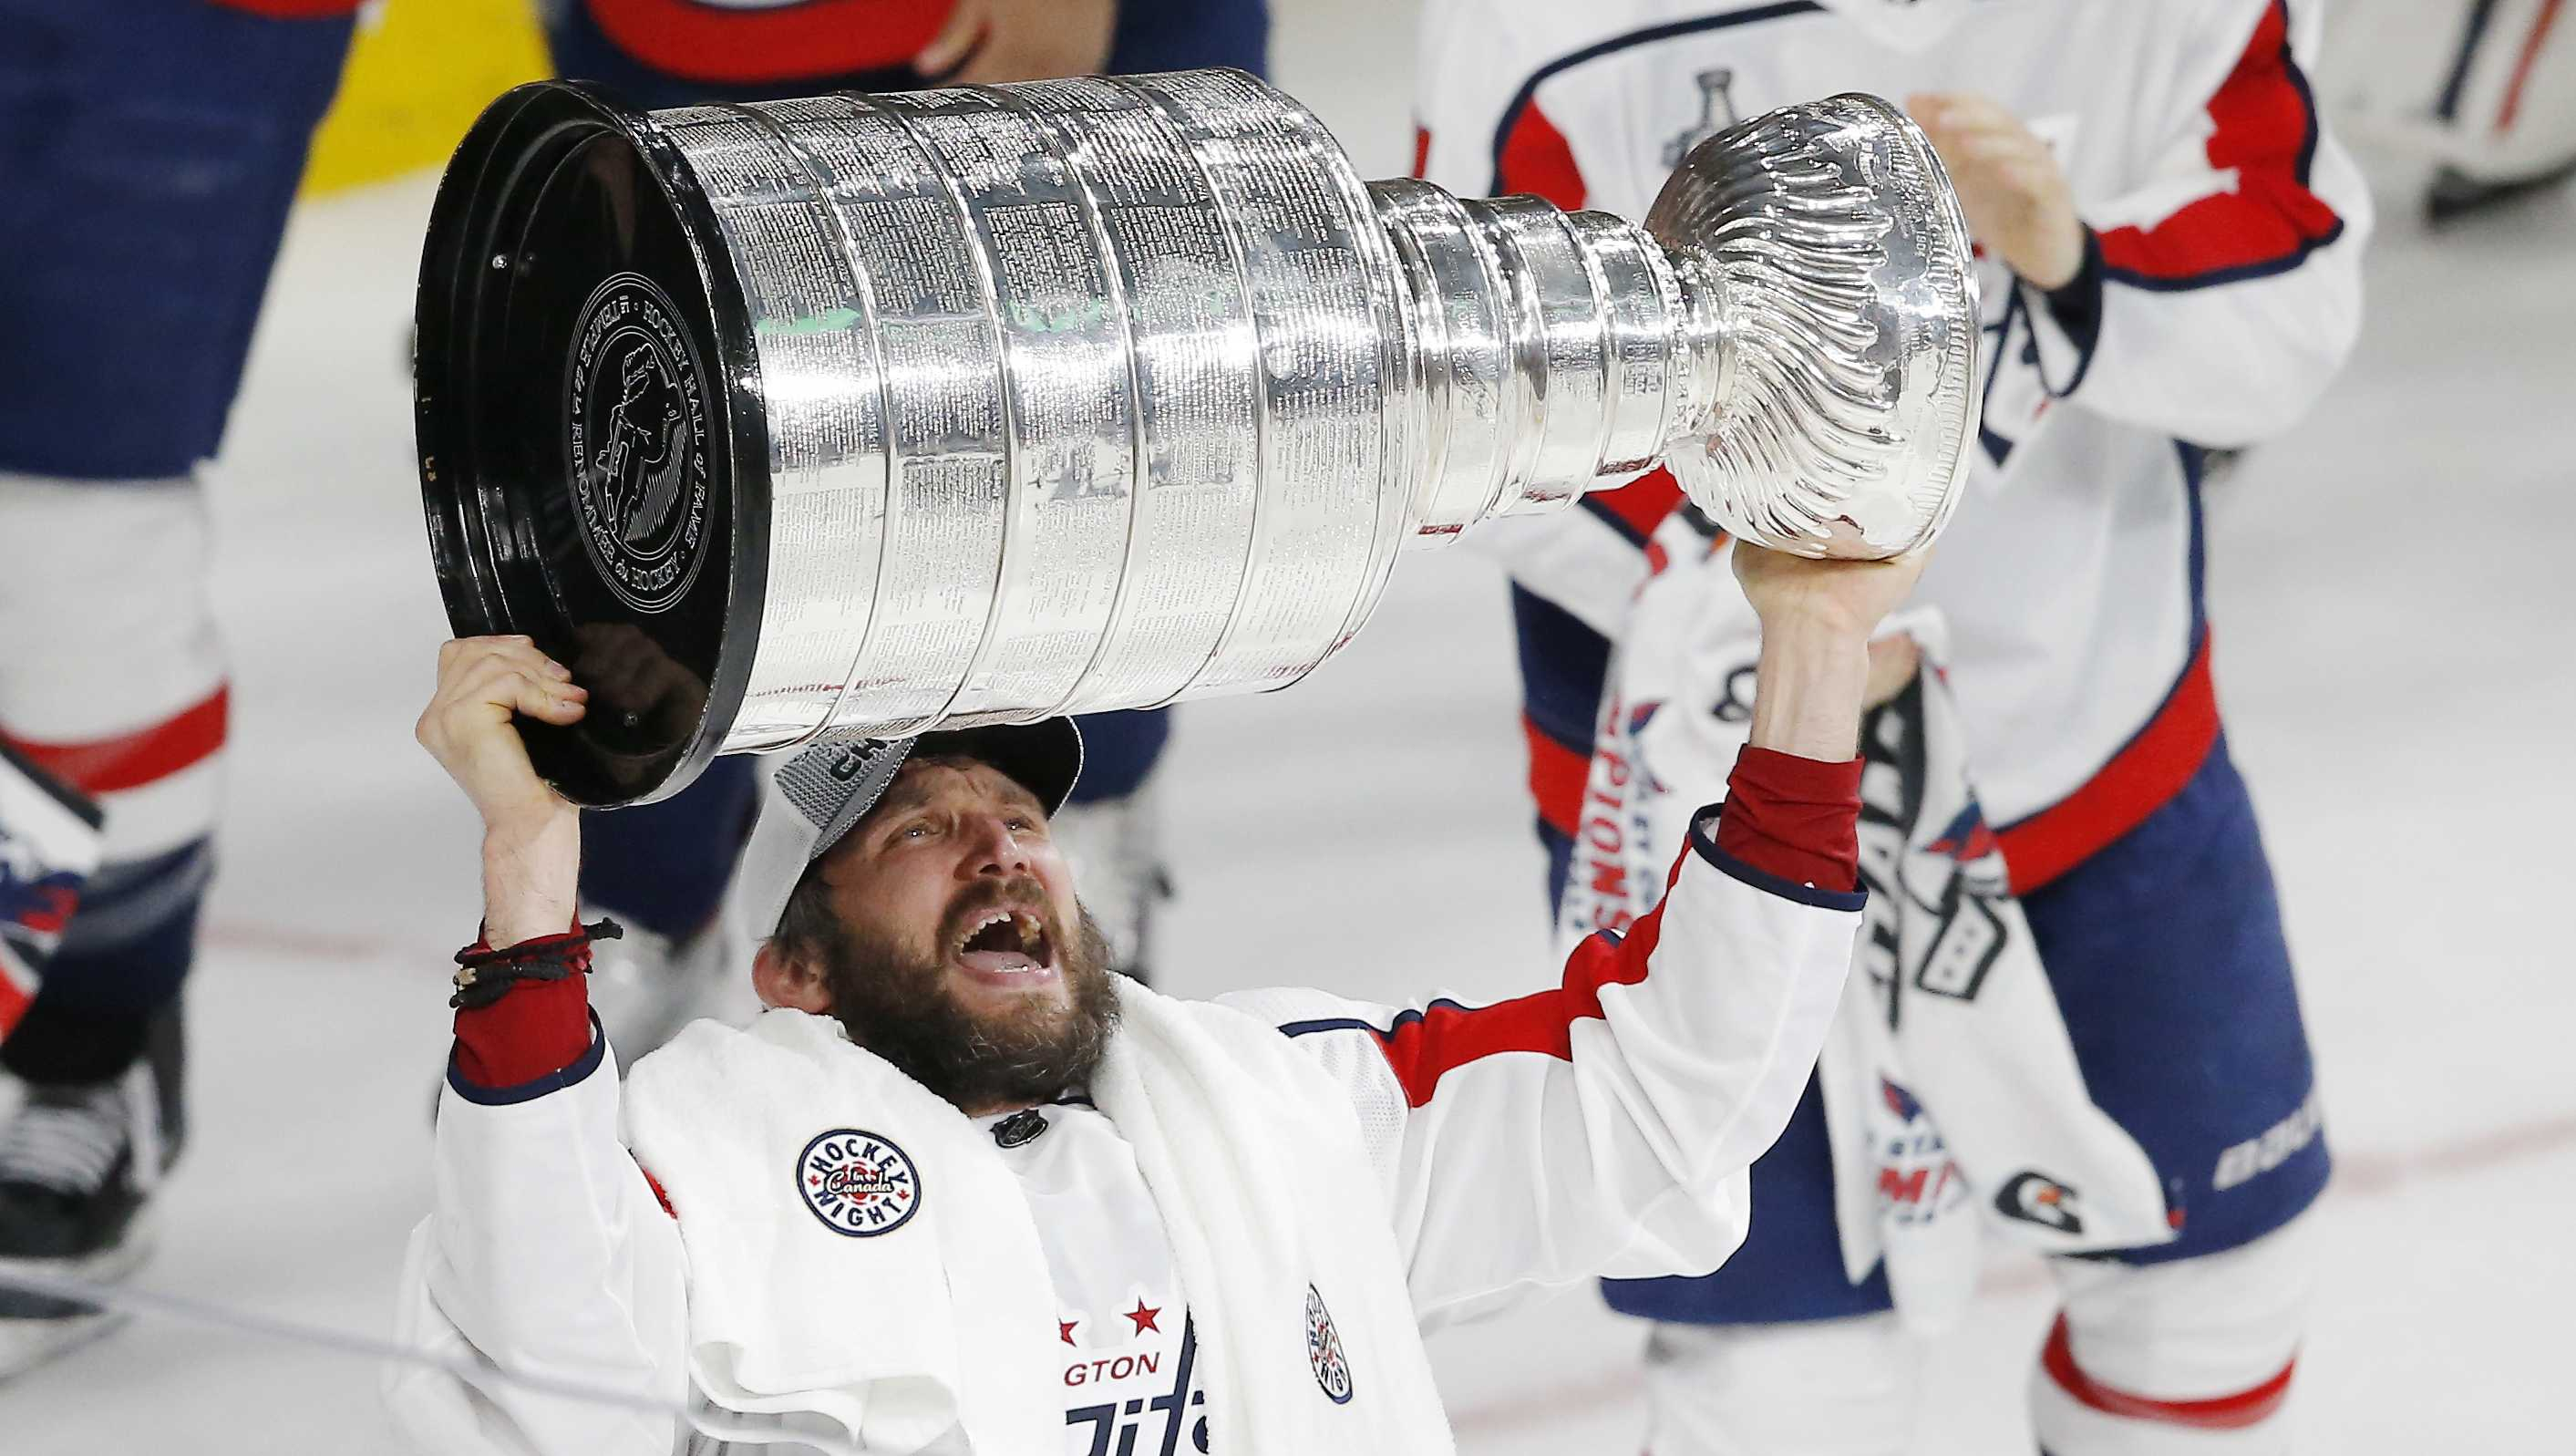 Washington Capitals left wing Alex Ovechkin, of Russia, hoists the Stanley Cup after the Capitals defeated the Vegas Golden Knights 4-3 in Game 5 of the NHL hockey Stanley Cup Finals Thursday, June 7, 2018, in Las Vegas.